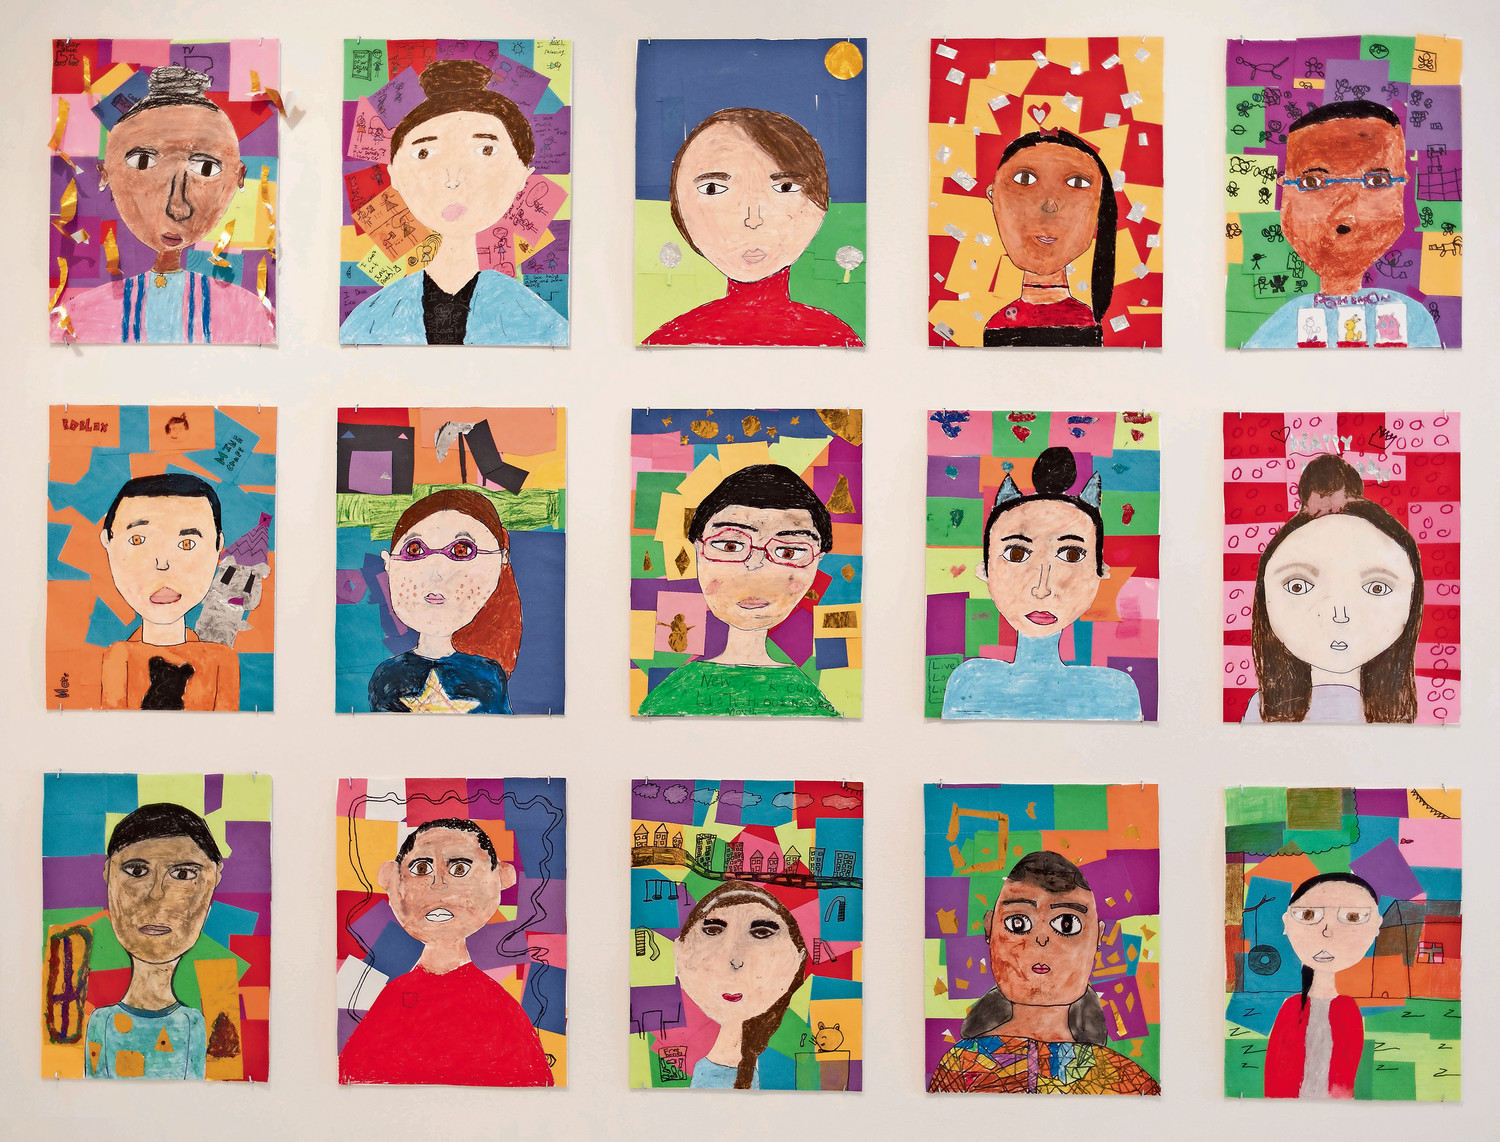 With artists like Frida Kahlo and Vincent van Gogh as inspiration, fourth-grade students at P.S. 86 created self-portraits that spoke to their personality and interests. They are part of the group exhibition 'A Year with Children 2018,' which is one display at the Guggenheim Museum until June 13.